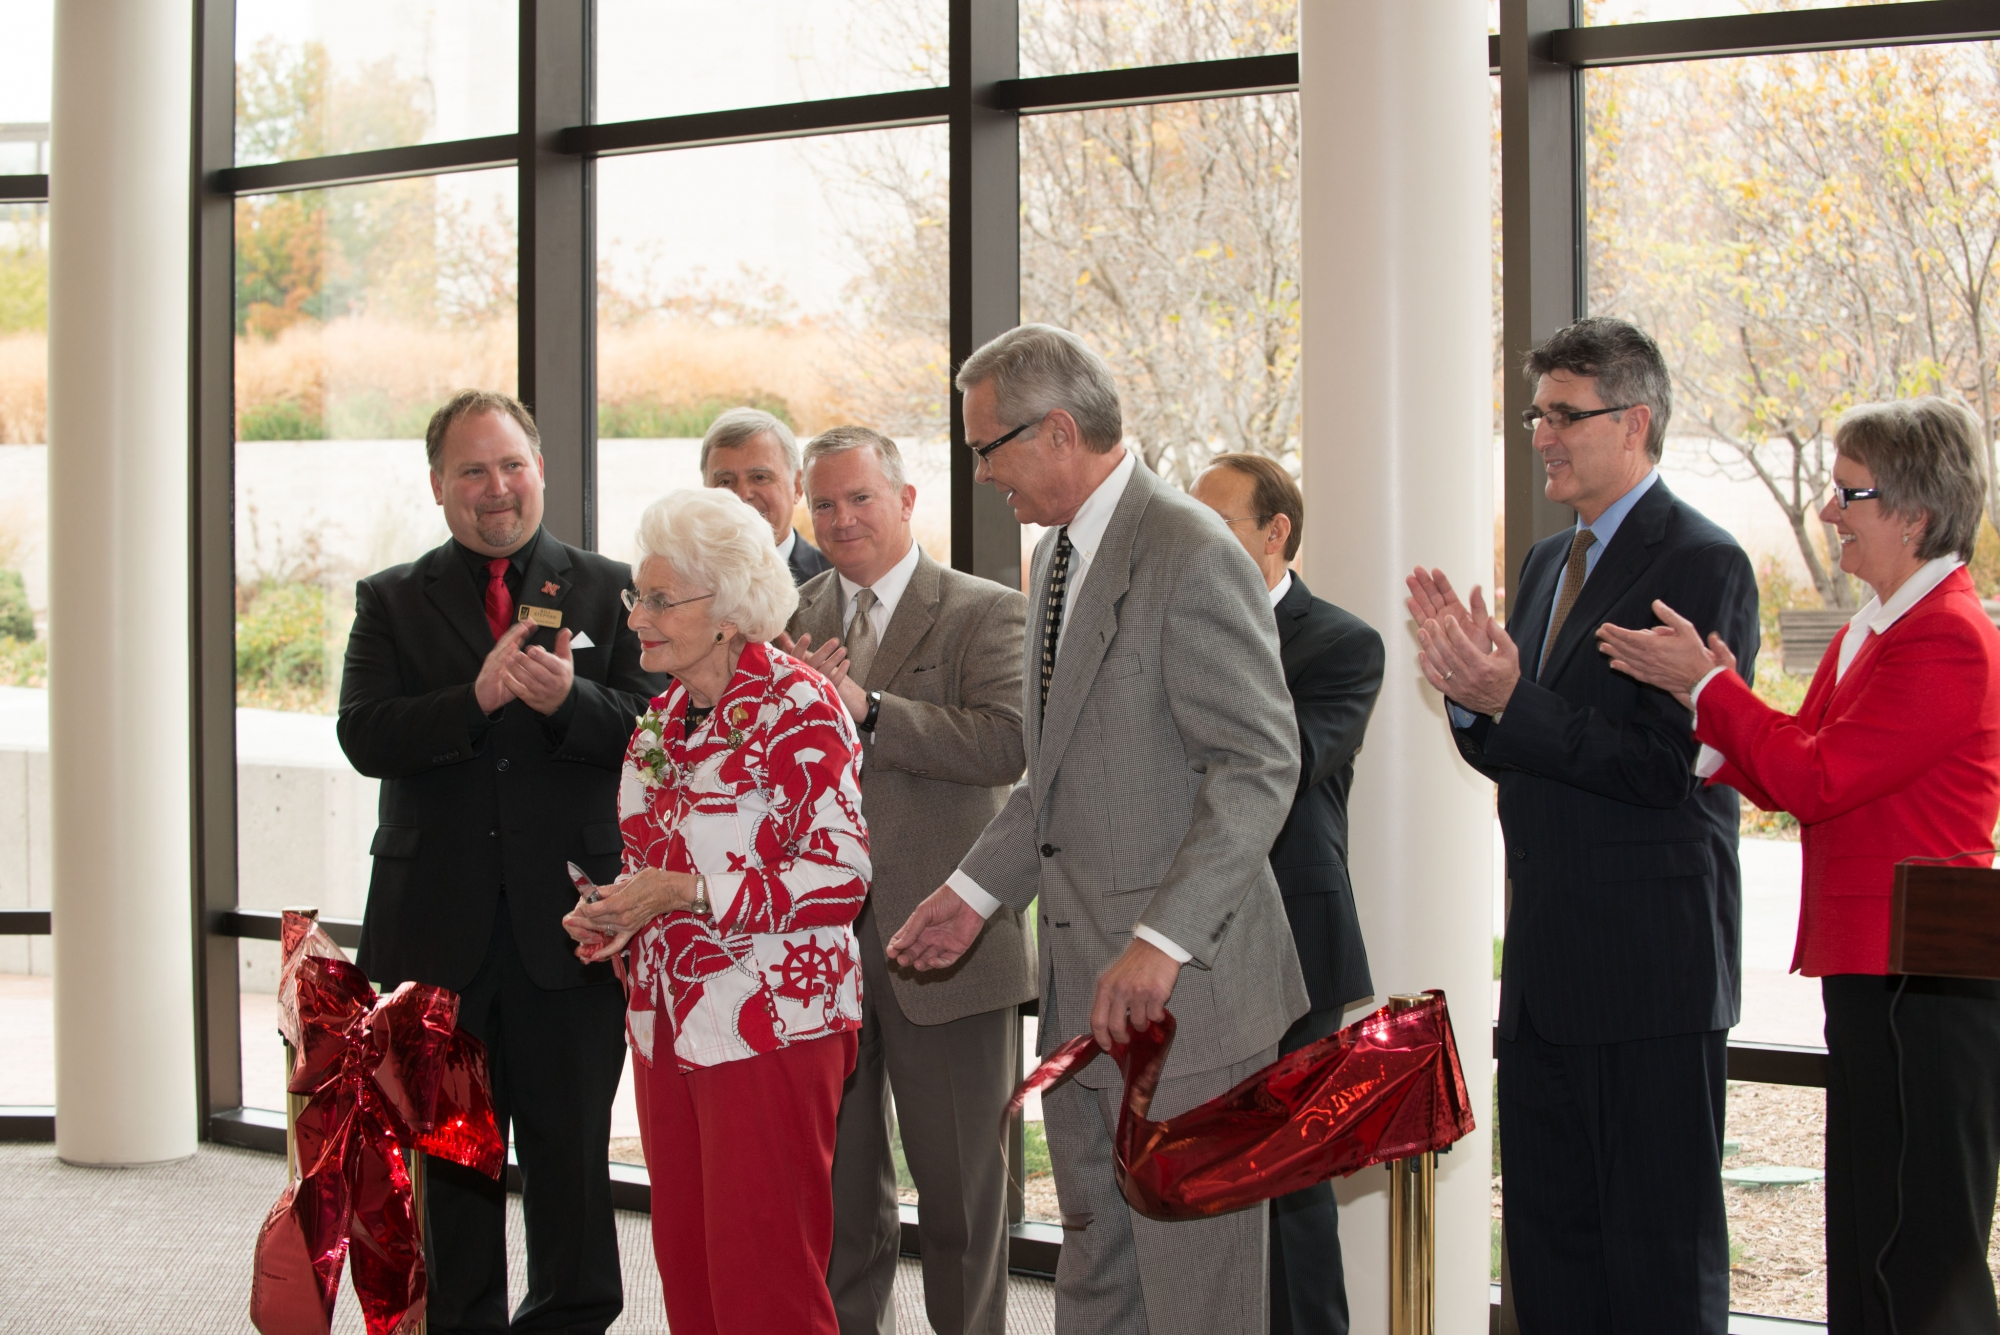 Image of the ribbon cutting for the Lied Commons building showing Christina Hixson, the Mayor of Lincoln, and other dignitaries applauding after the ribbon is cut.